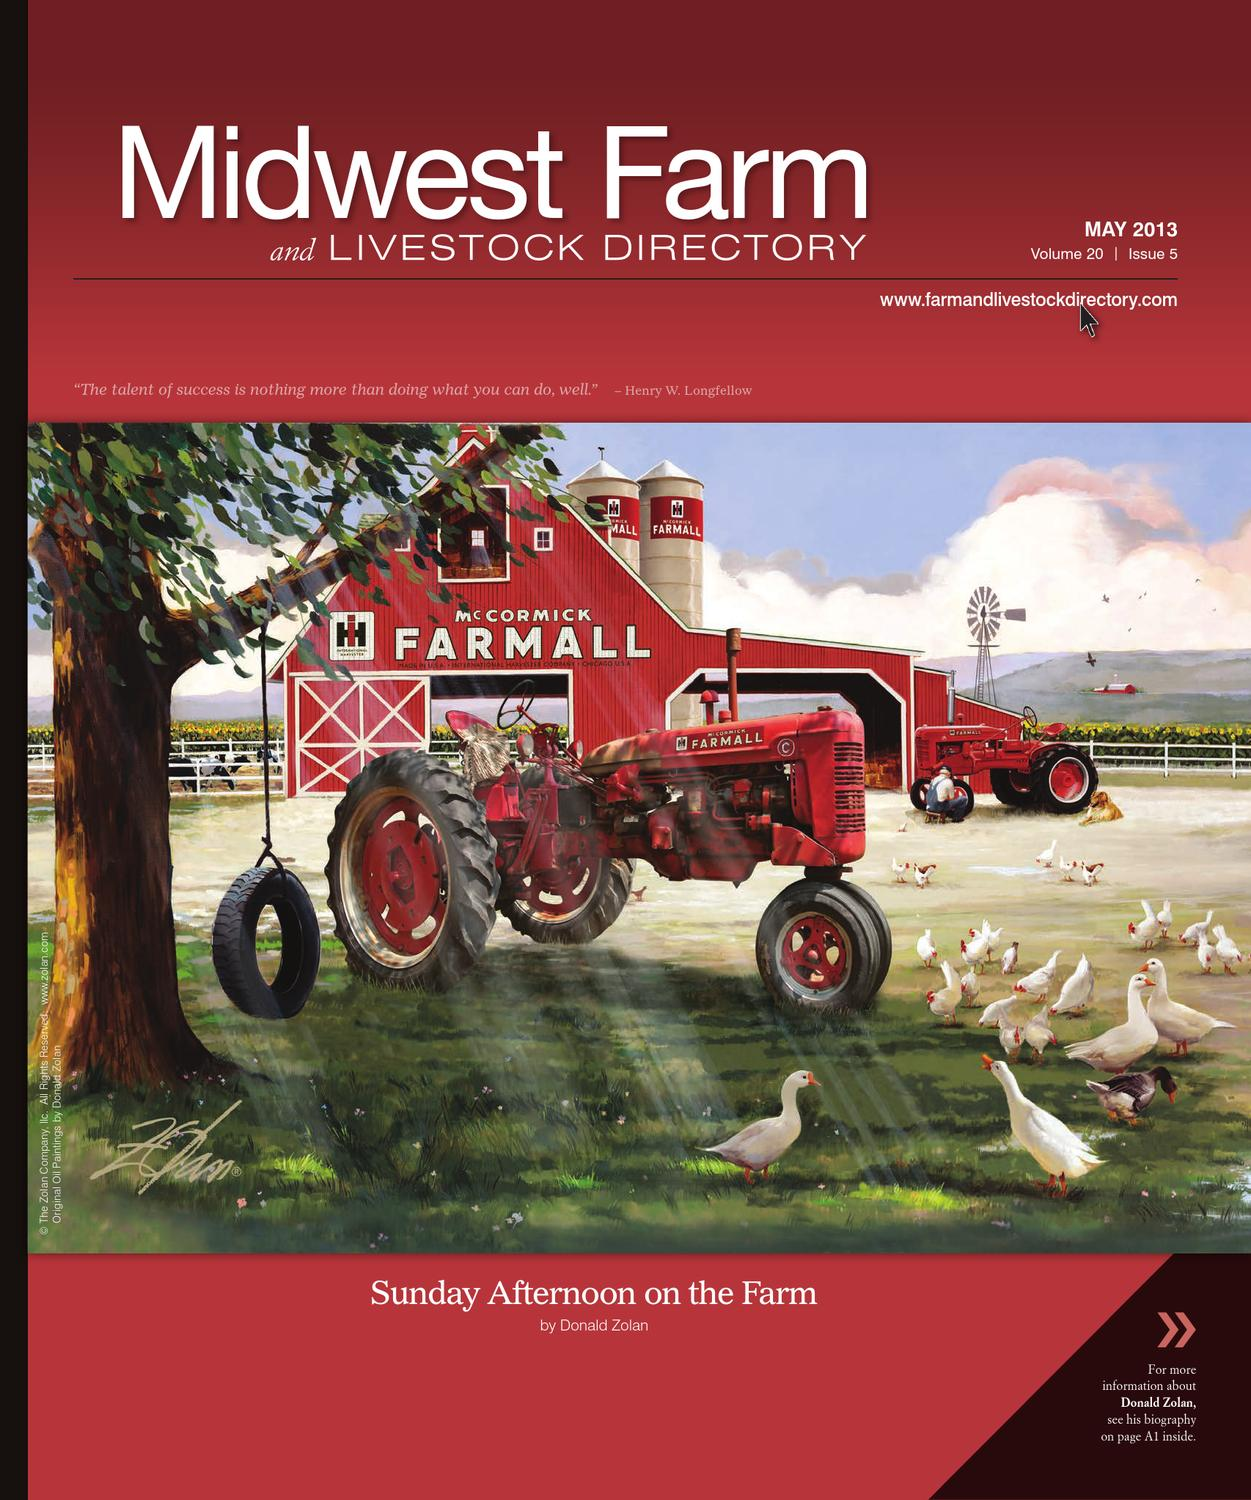 Midwest Farm And Livestock Directory | May 2013 by Five Star